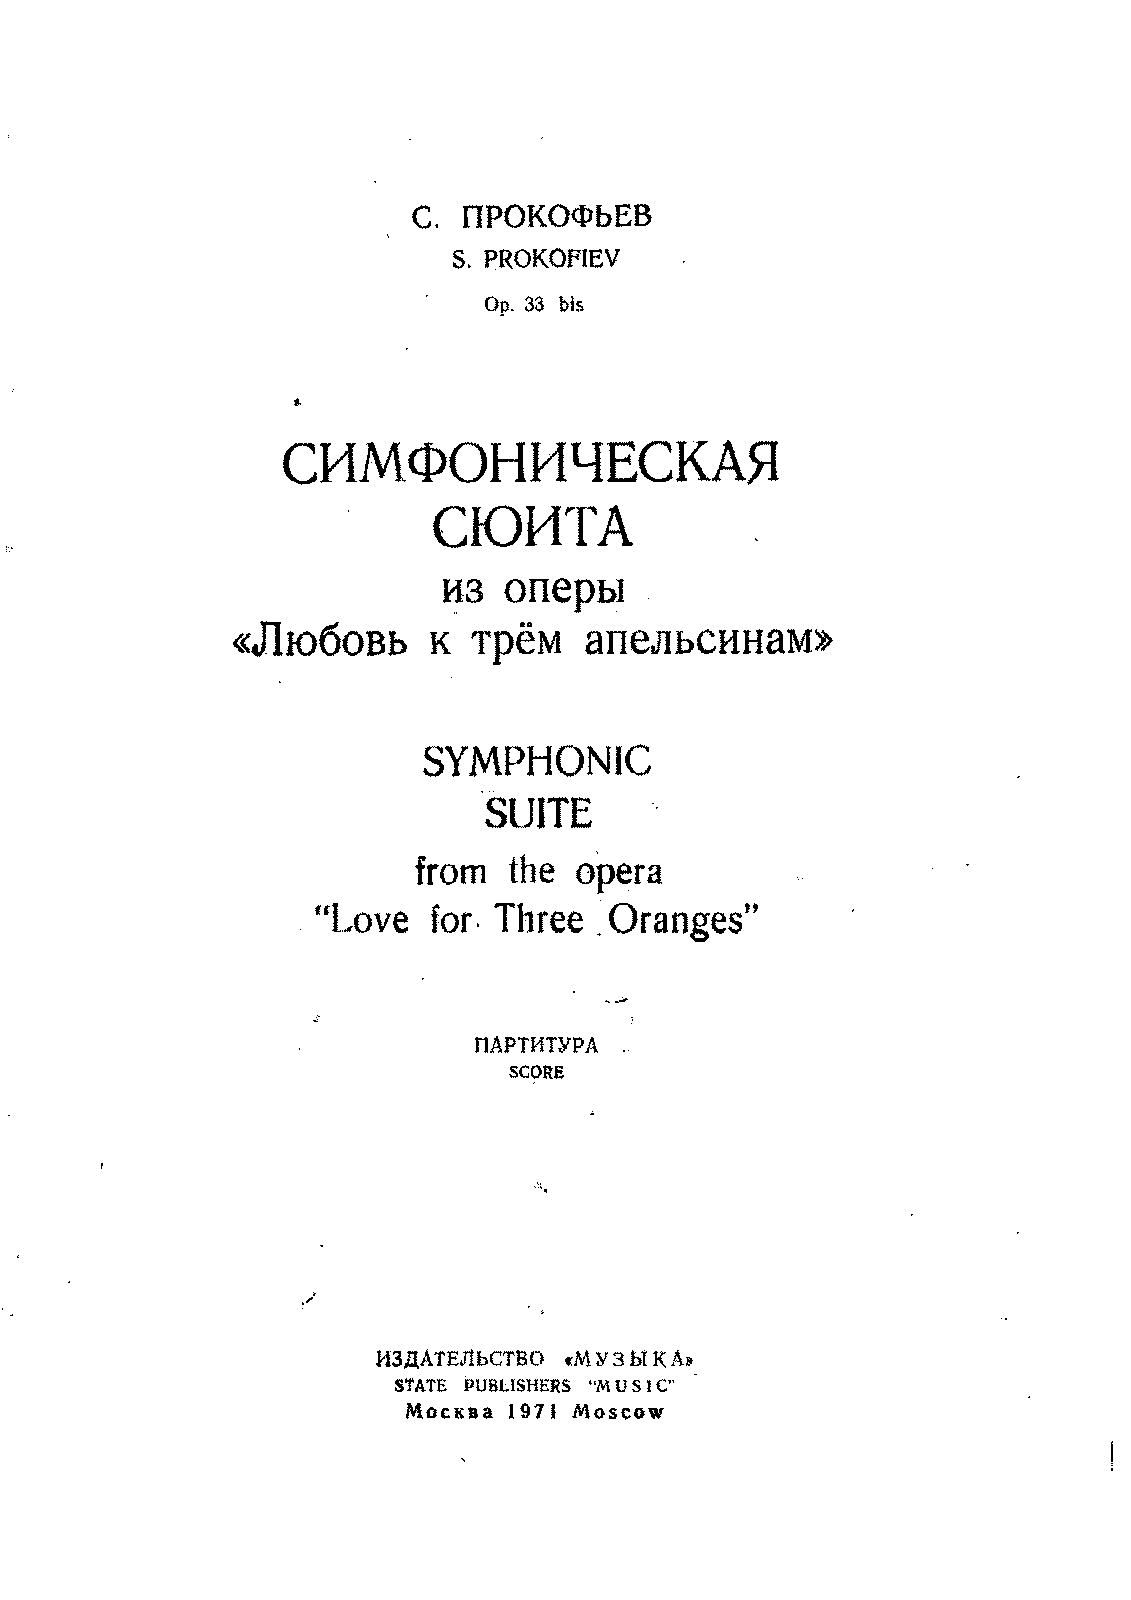 PMLP206699-Prokoviev - The Love for Three Oranges suite (full score).pdf